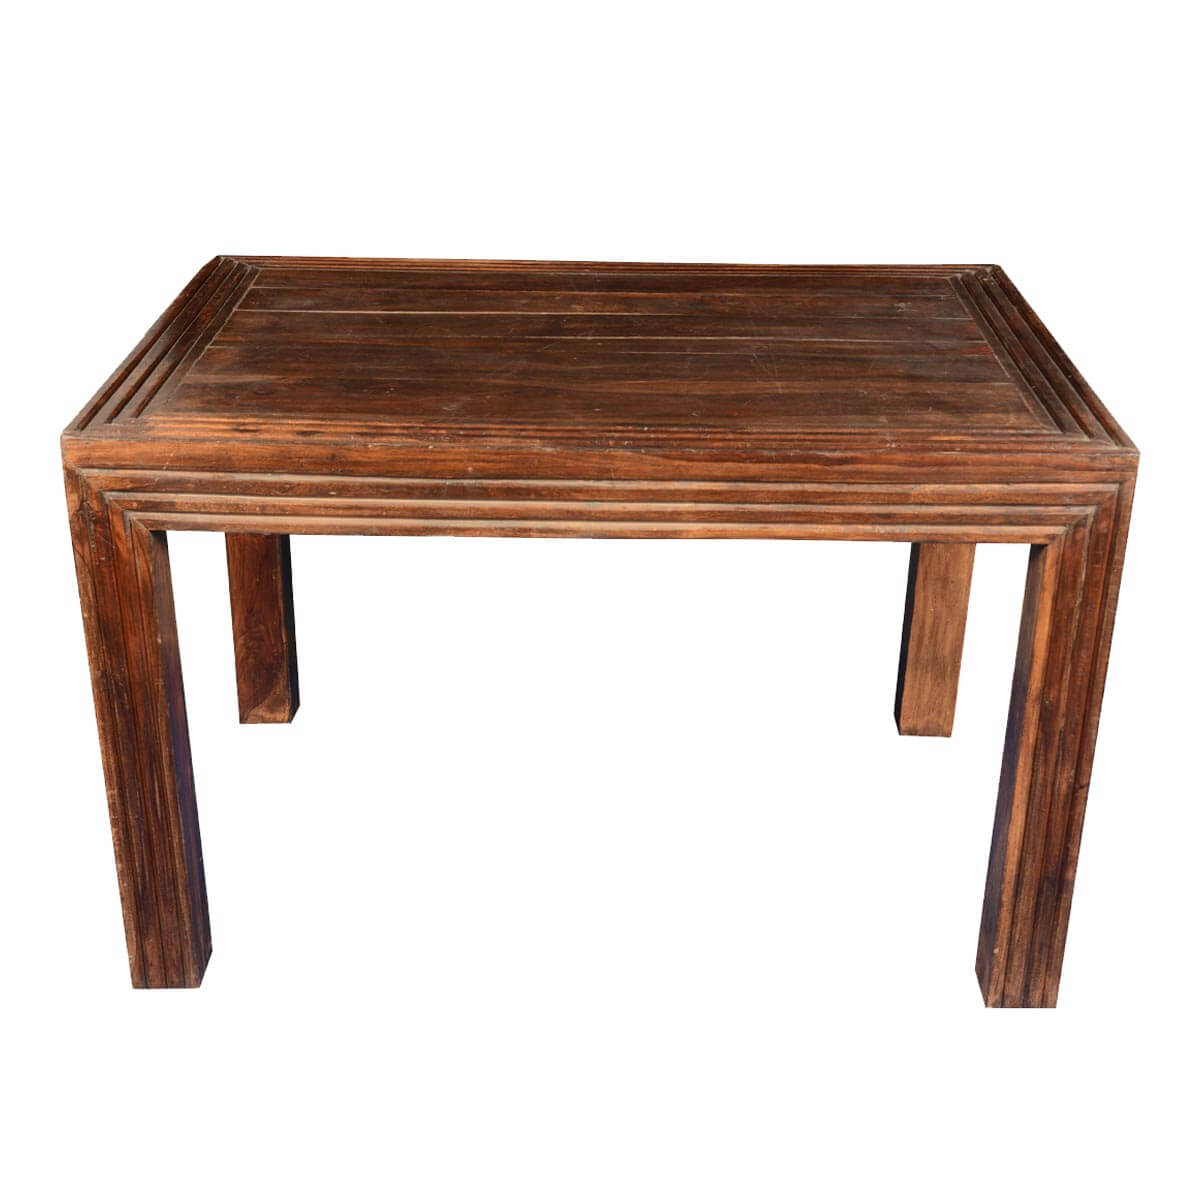 Glacier rustic square dining table rustic log furniture by amish - Log Dining Table Stump Table Tree Base Table Rustic Amish